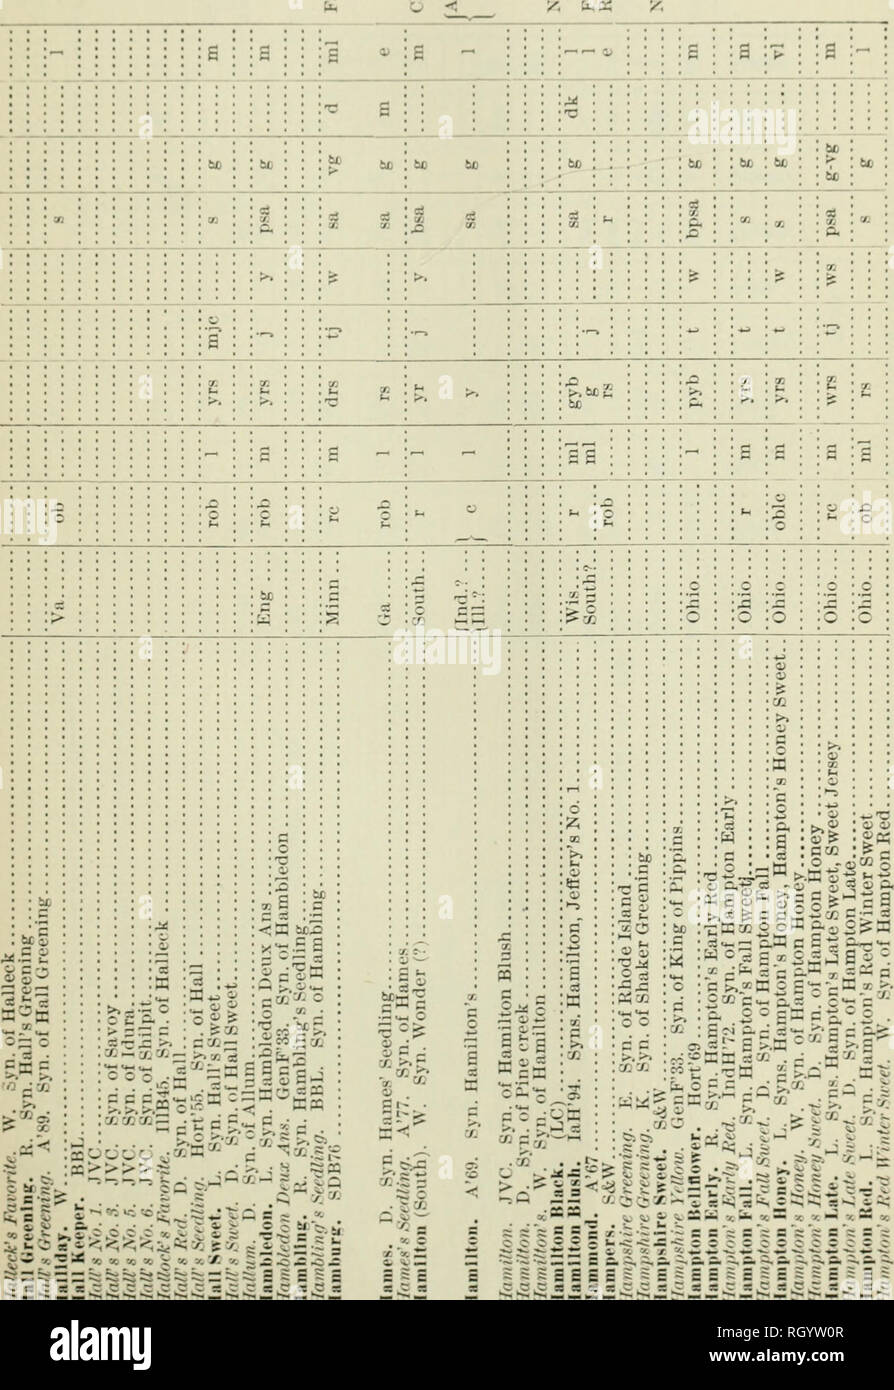 """. Bulletin. 1901-13. Agriculture; Agriculture. CATALOcMK oK  A KI KTI Ks^. l^n 1= i ^= < ! S.i-2 V. ui :3 ^< """" 11 v. ^ ^ ill laimedby.I.s. originated in . (.9. 93. It is have origina nois. f^ O < u h P. c t« . ^ -t ^ * -i' j: a jr s a r t; :l